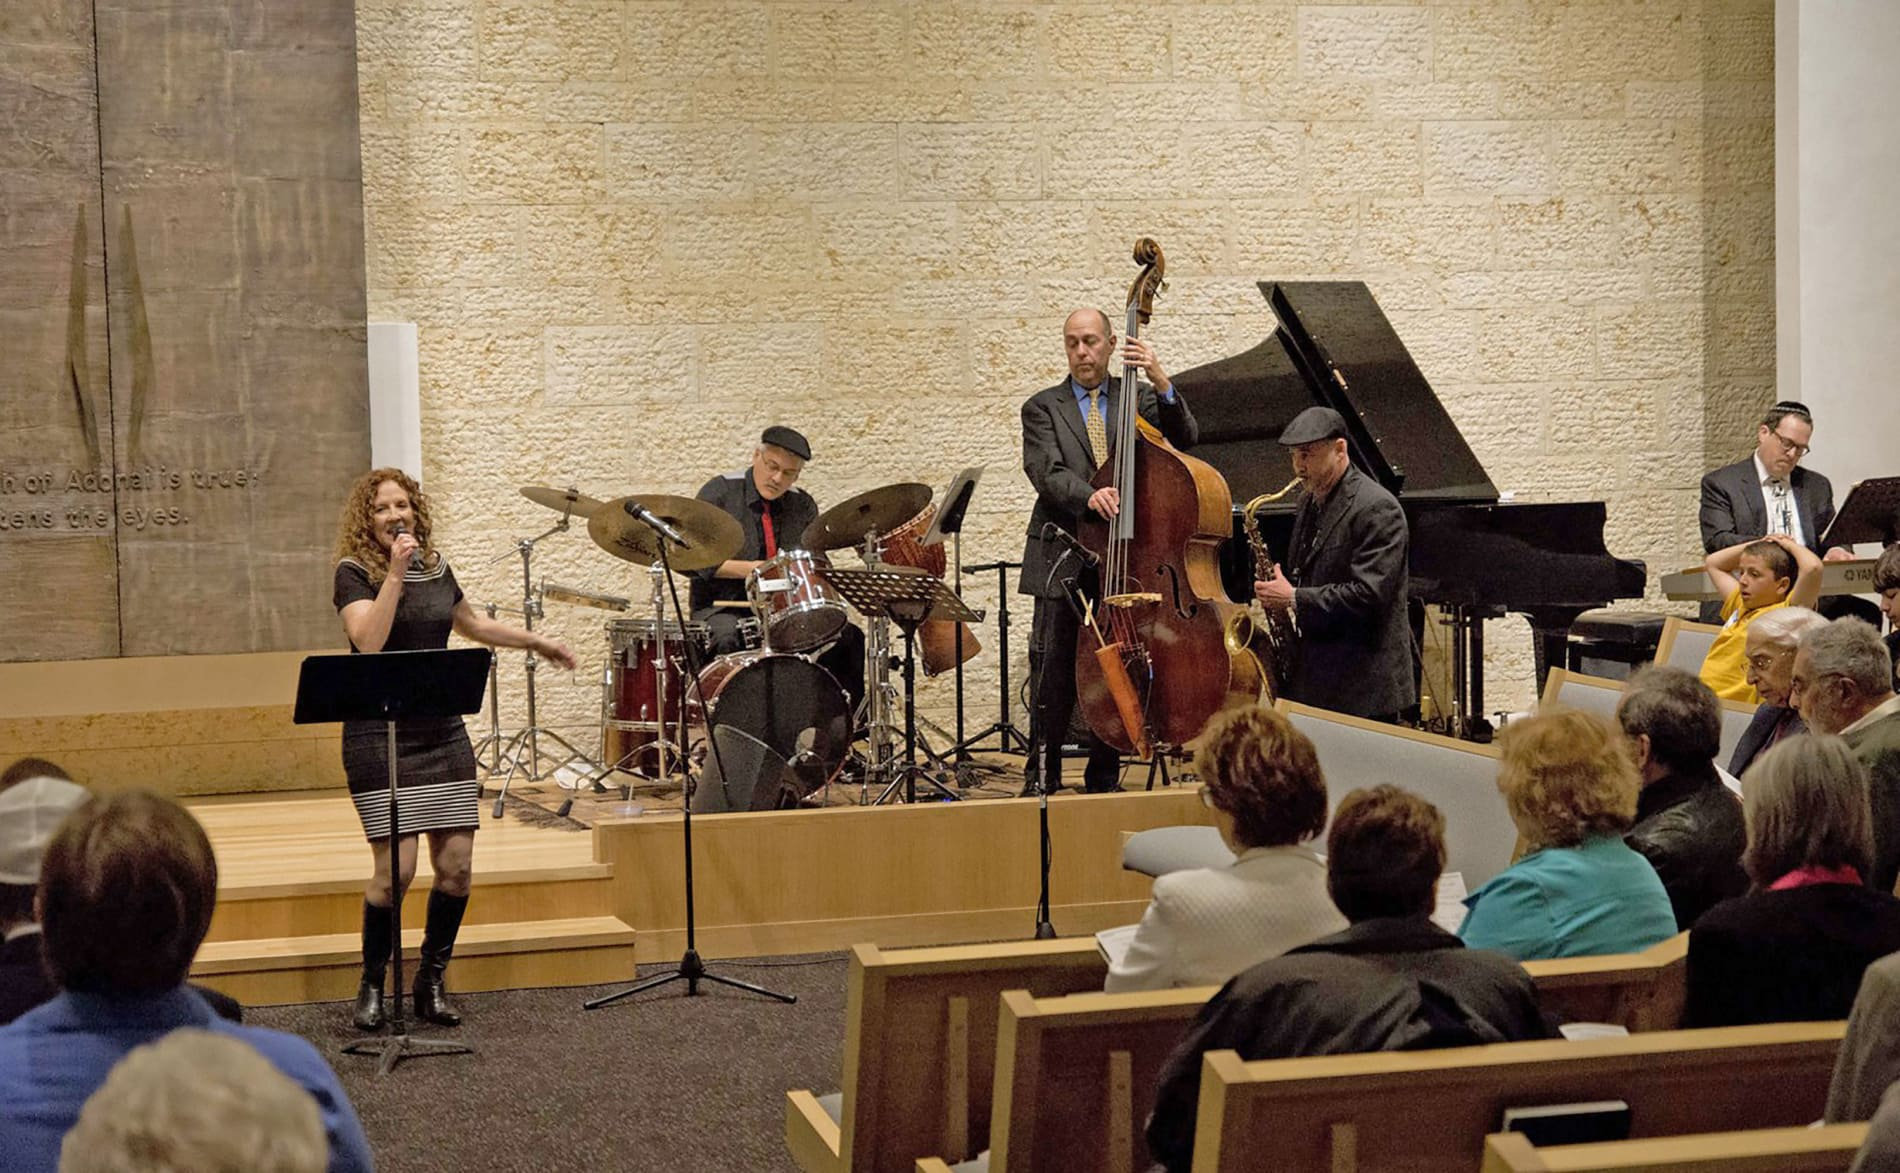 Musicians play during Shabbat service